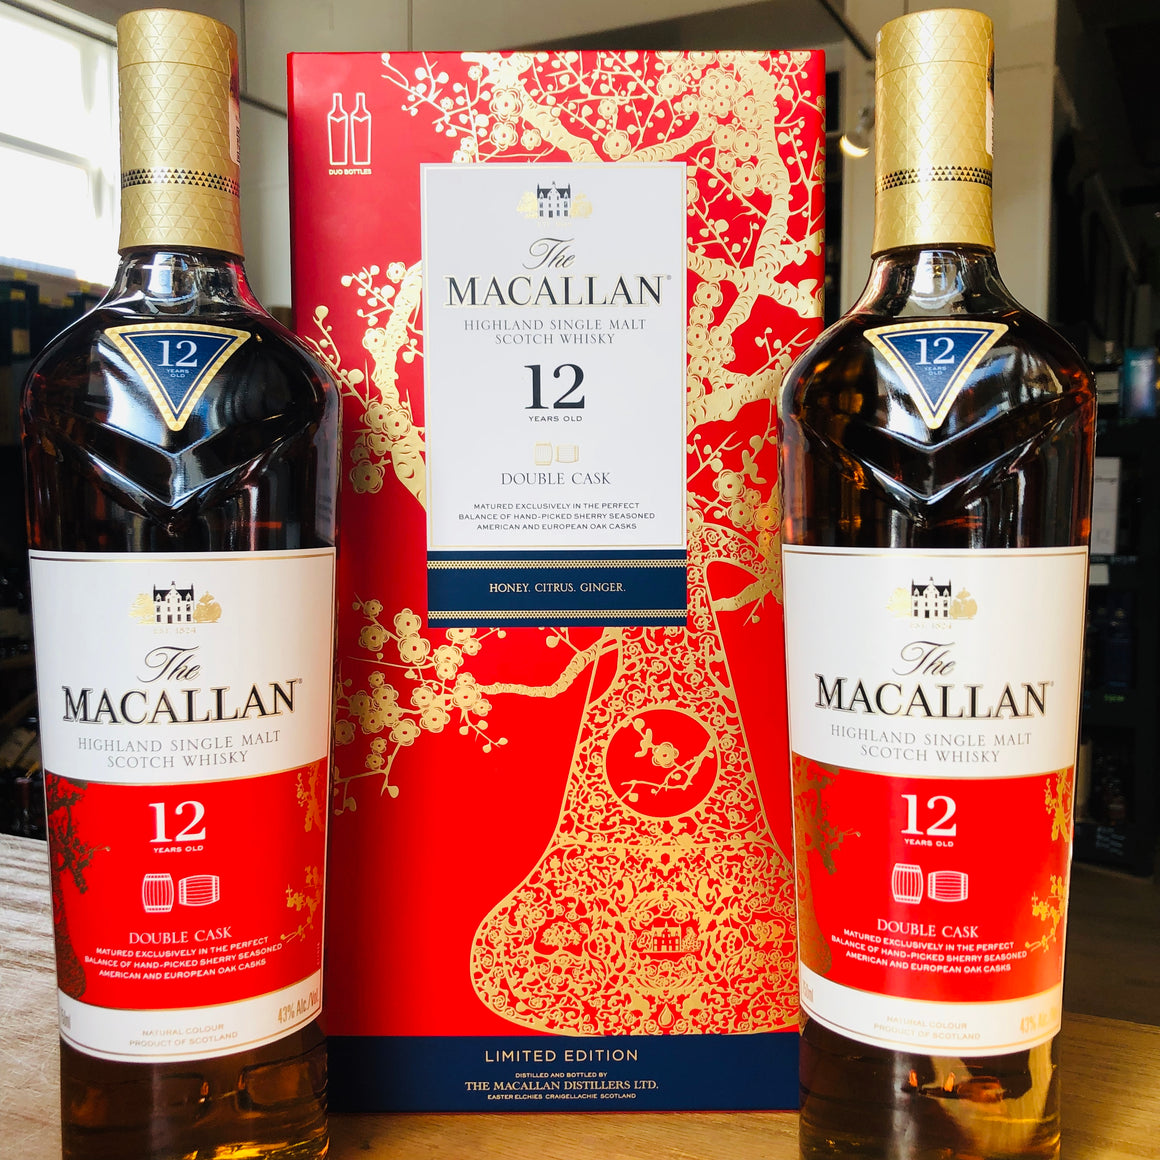 MACALLAN 12 YEAR DOUBLE CASK LUNAR NEW YEAR SINGLE MALT SCOTCH WHISKY (2 BTLS) 750ML